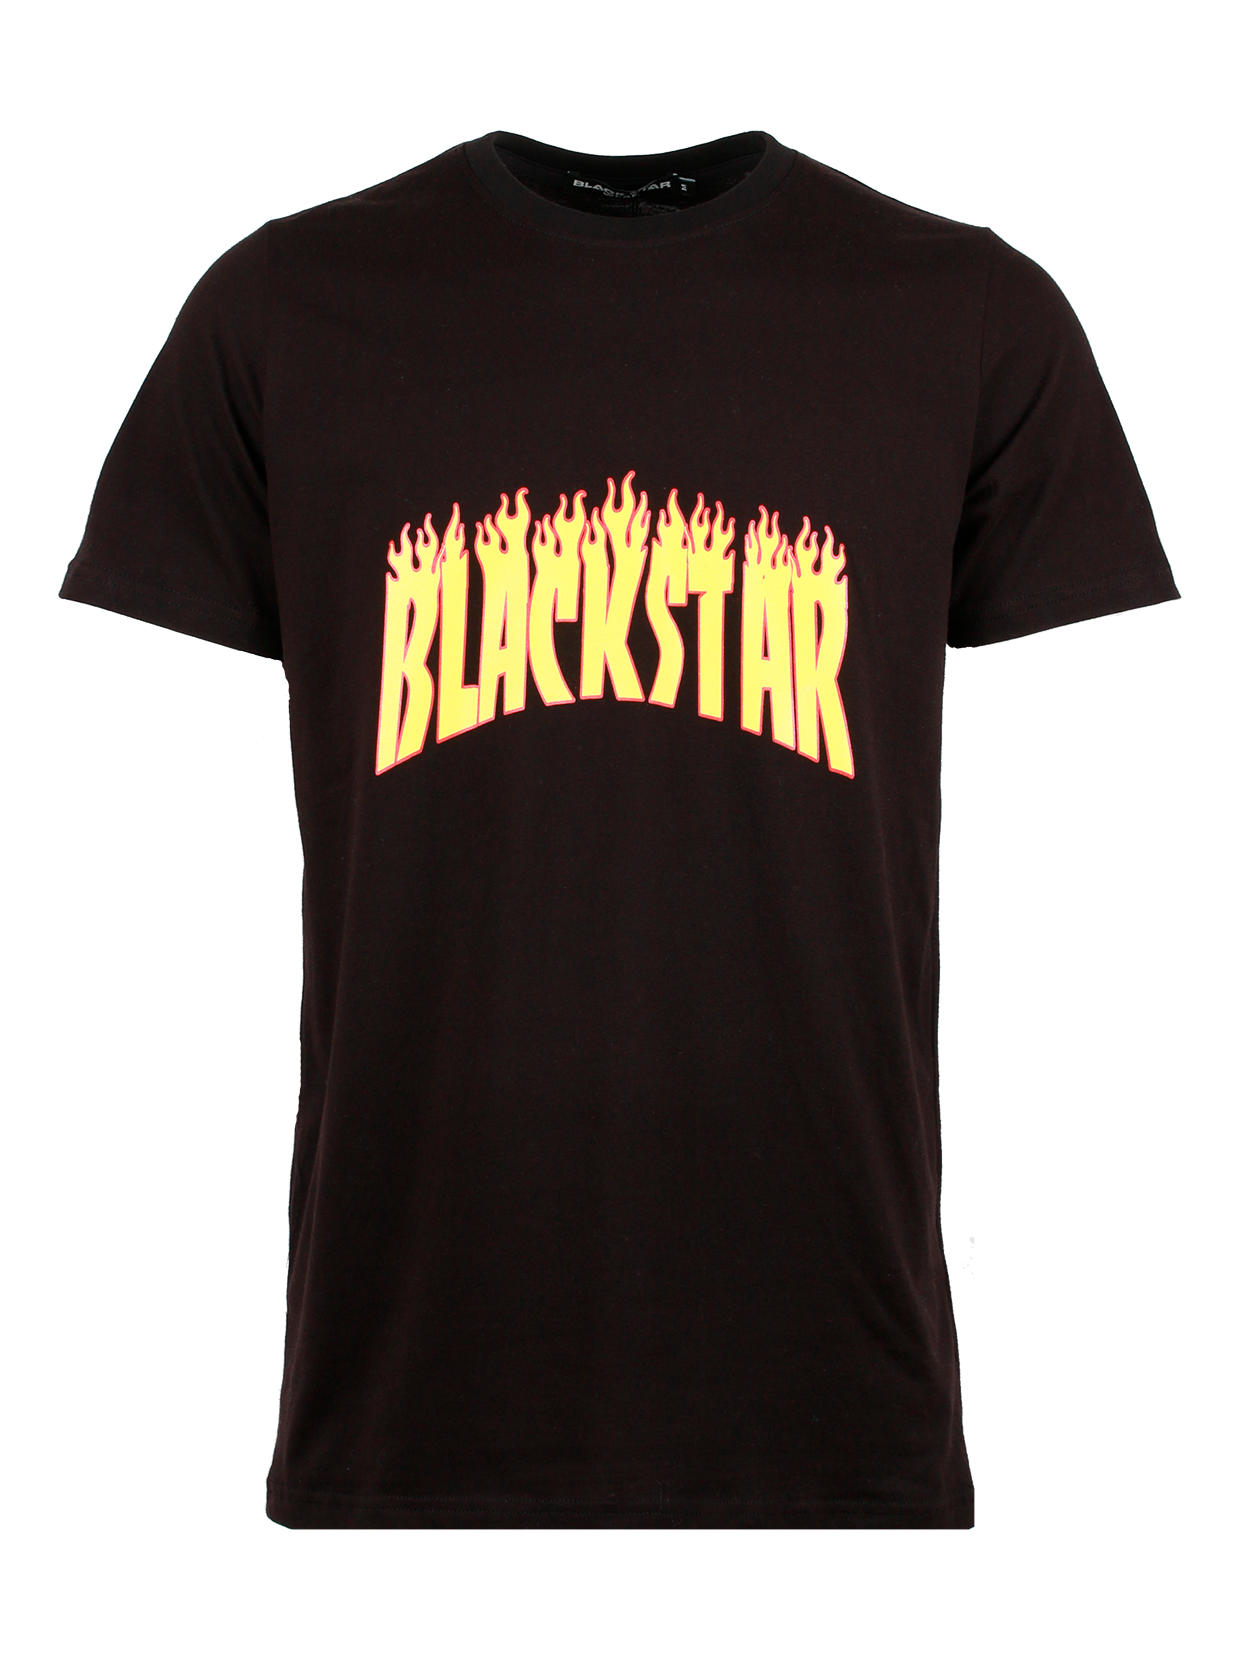 Mens t-shirt FIREMAN<br><br>size: L<br>color: Black<br>gender: male